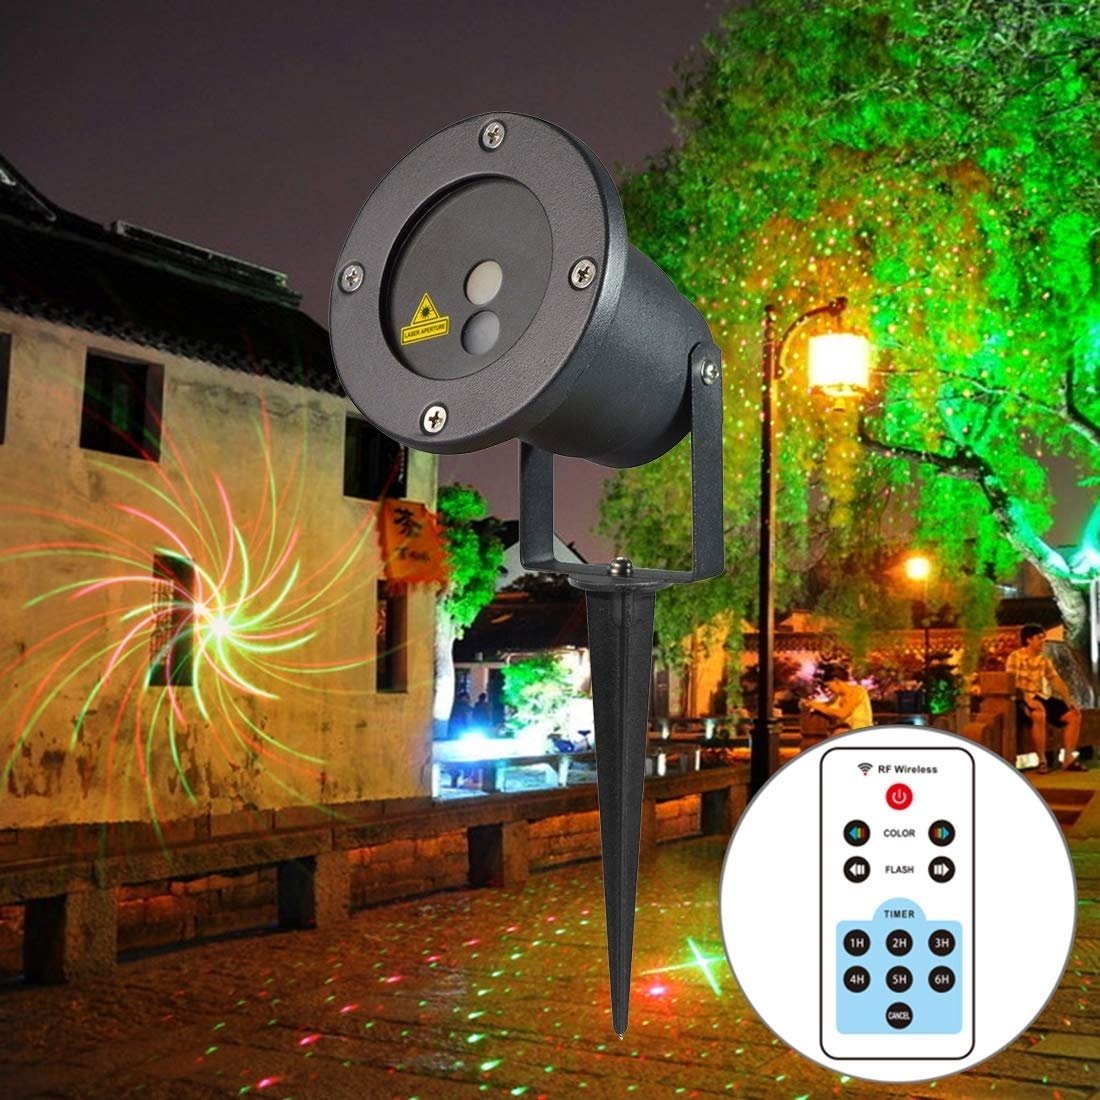 Outdoor Lights OD-08 5W Life Waterproof 8 in 1 Patterns Outdoor Lawn Yard Garden Decorative Projector Lamp with Remote Controller Garden Lights